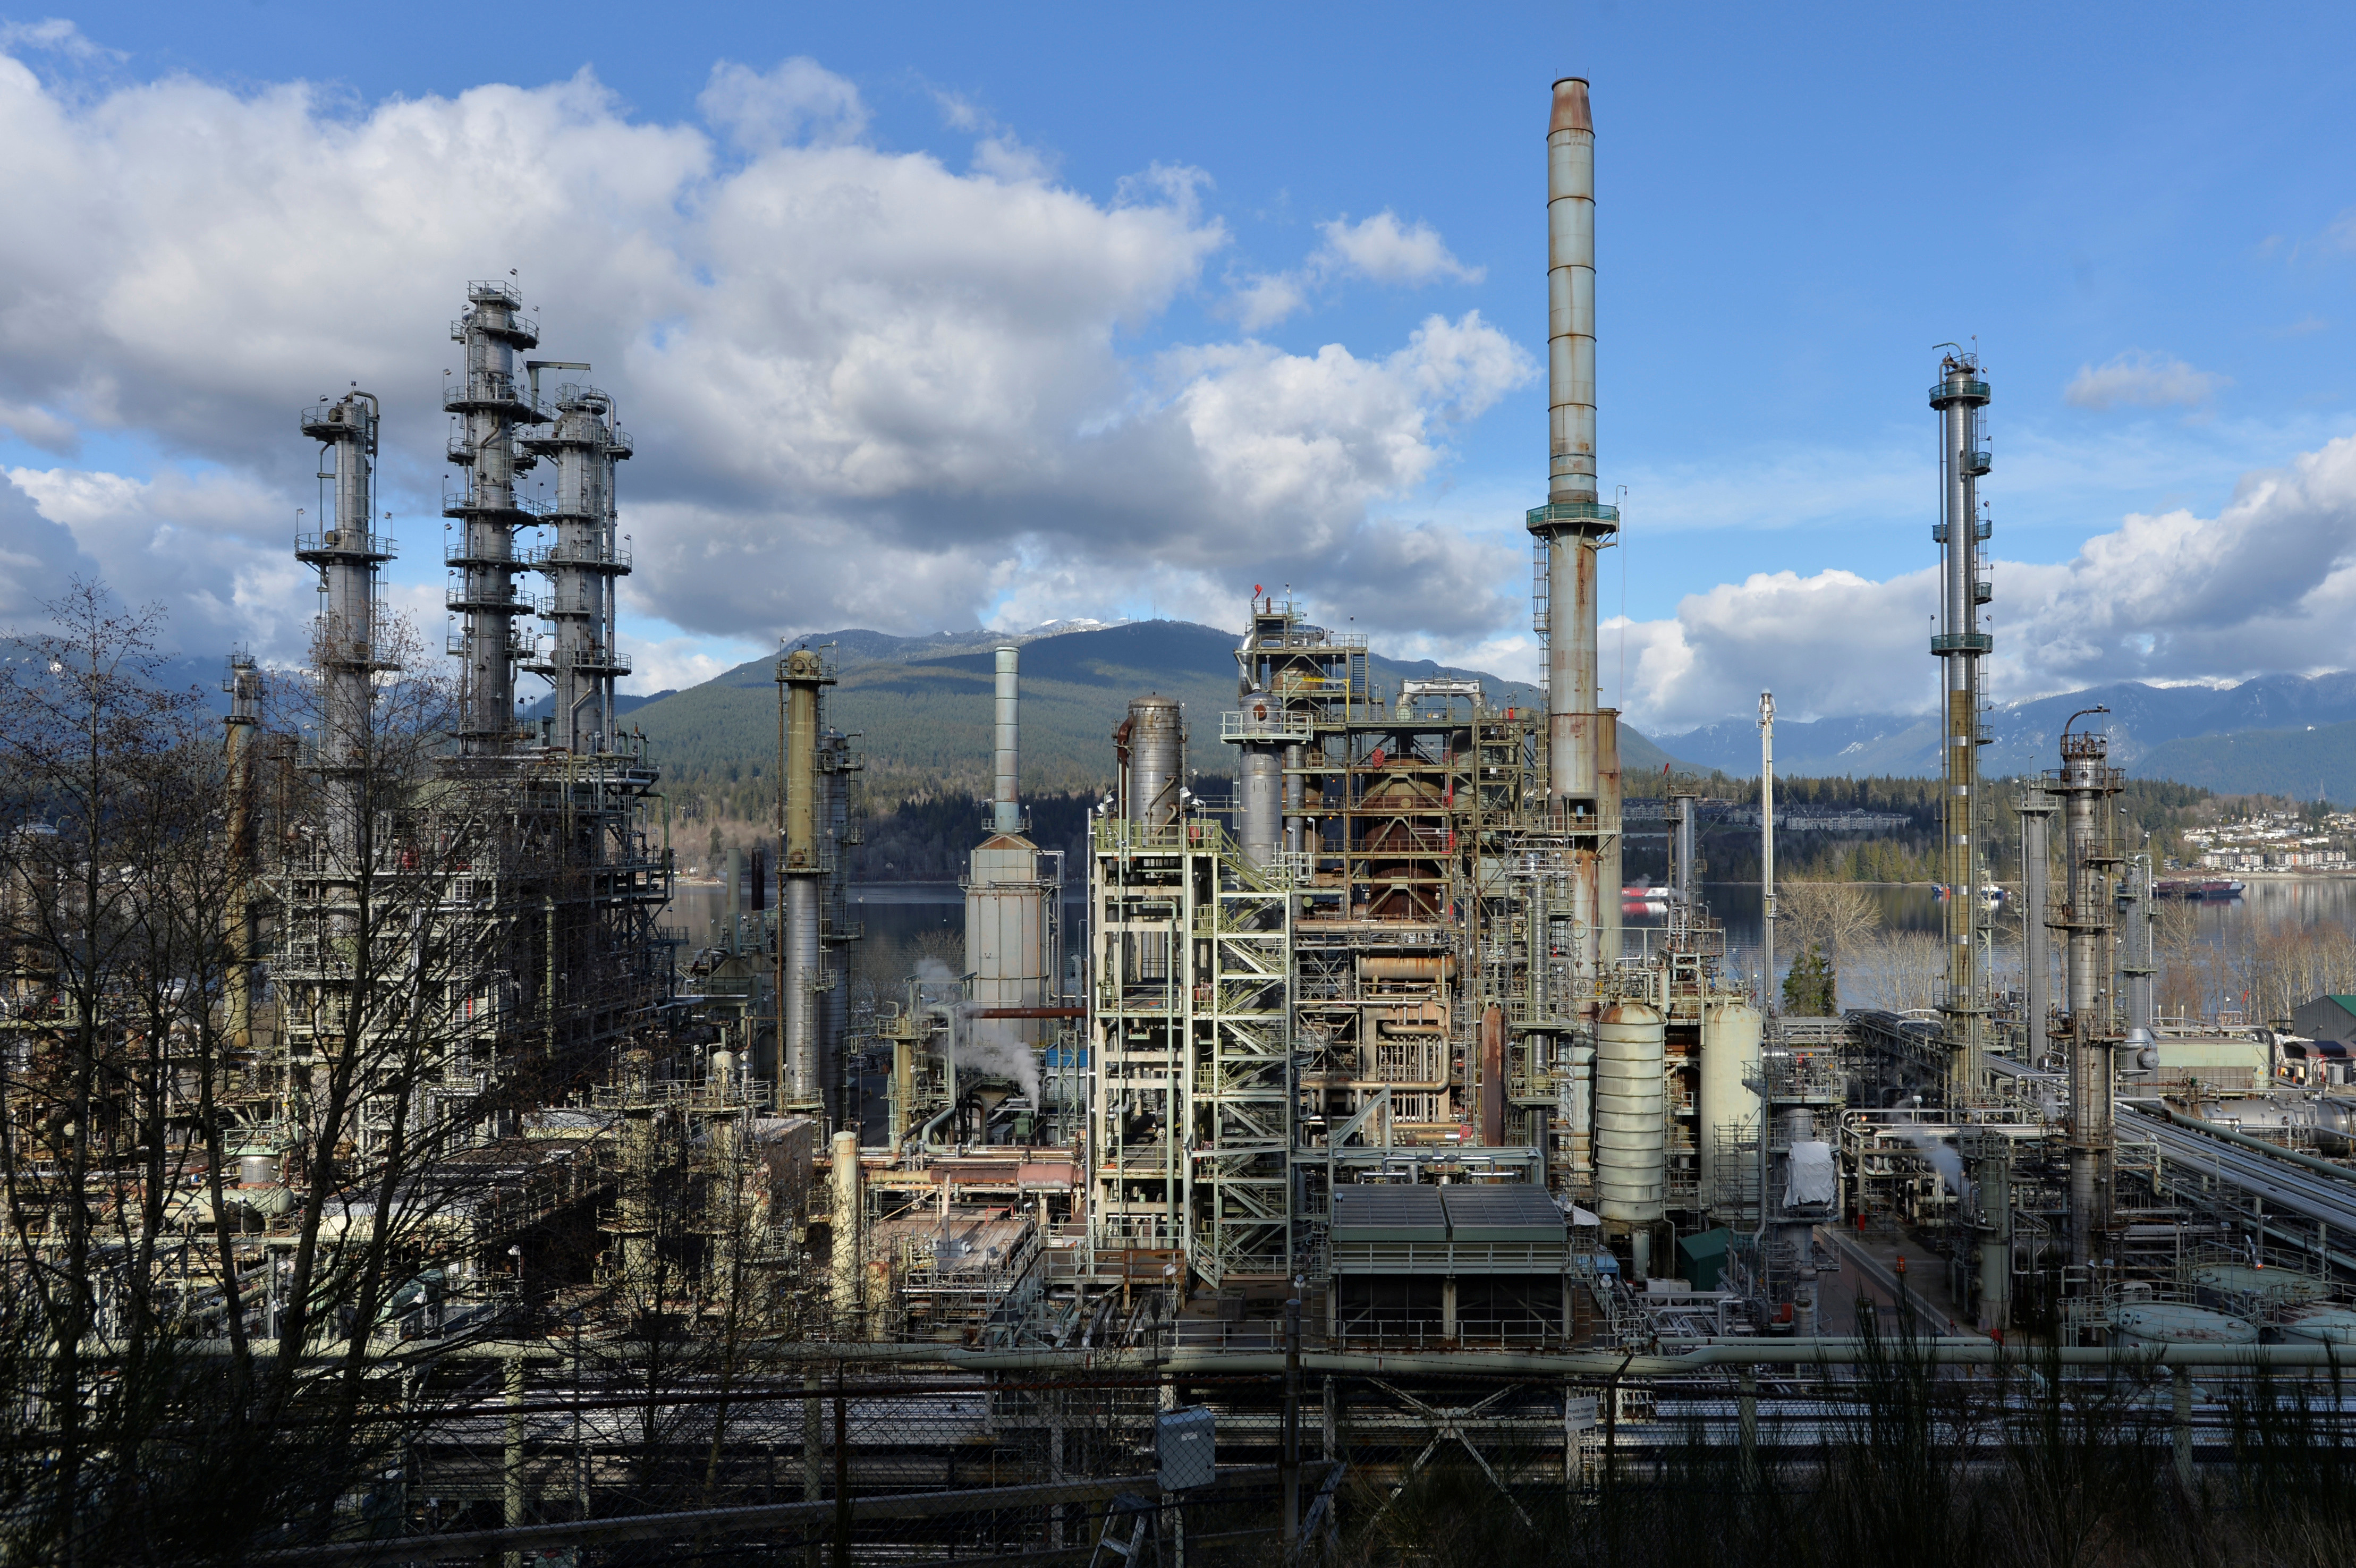 Parkland Fuel's refinery in Burnaby, British Columbia, Canada February 17, 2021.  REUTERS/Jennifer Gauthier